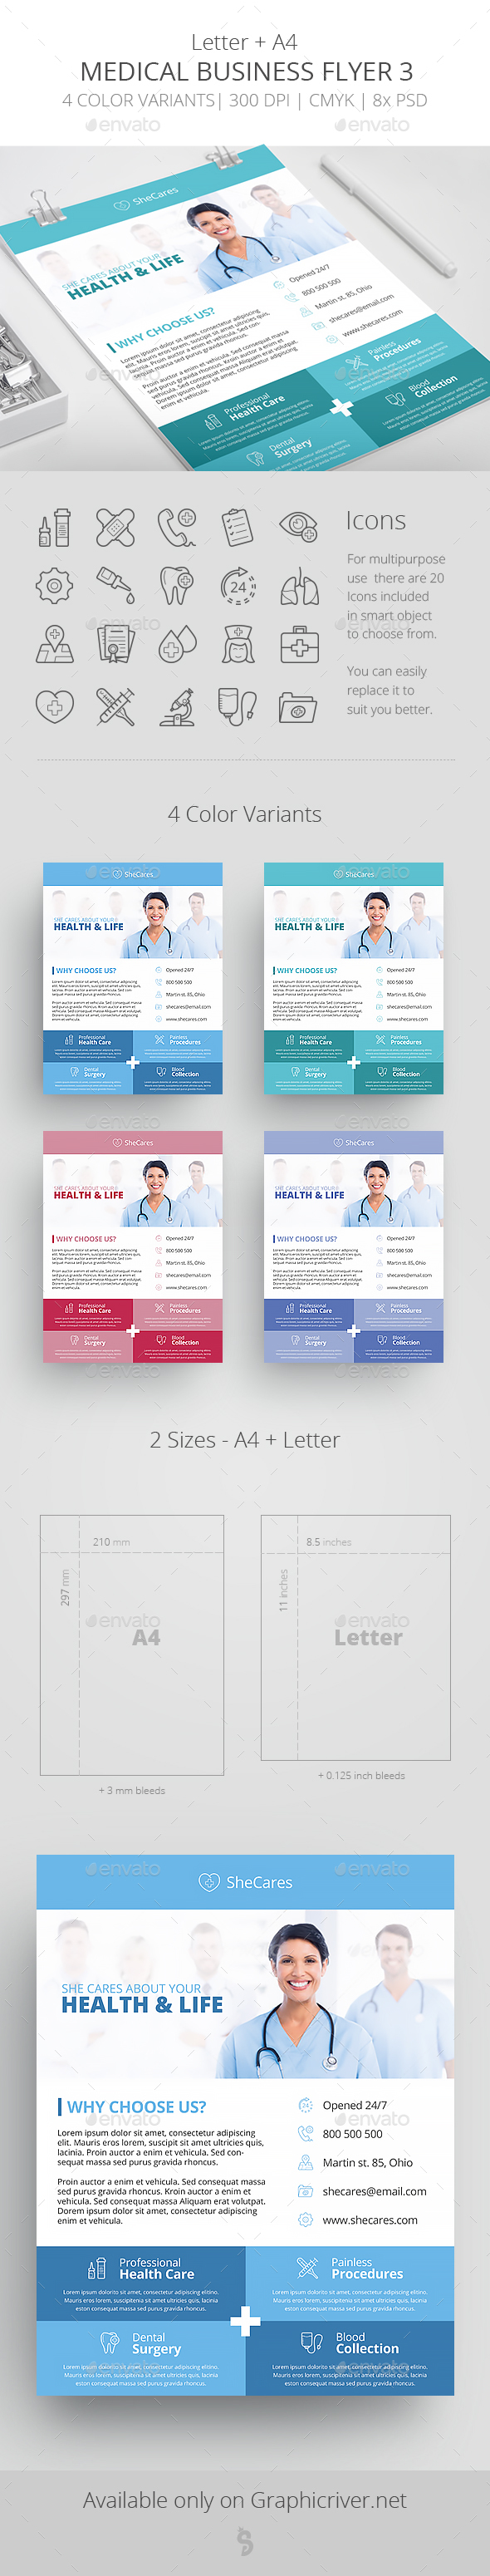 Medical Business Flyer Template 3 - Corporate Flyers